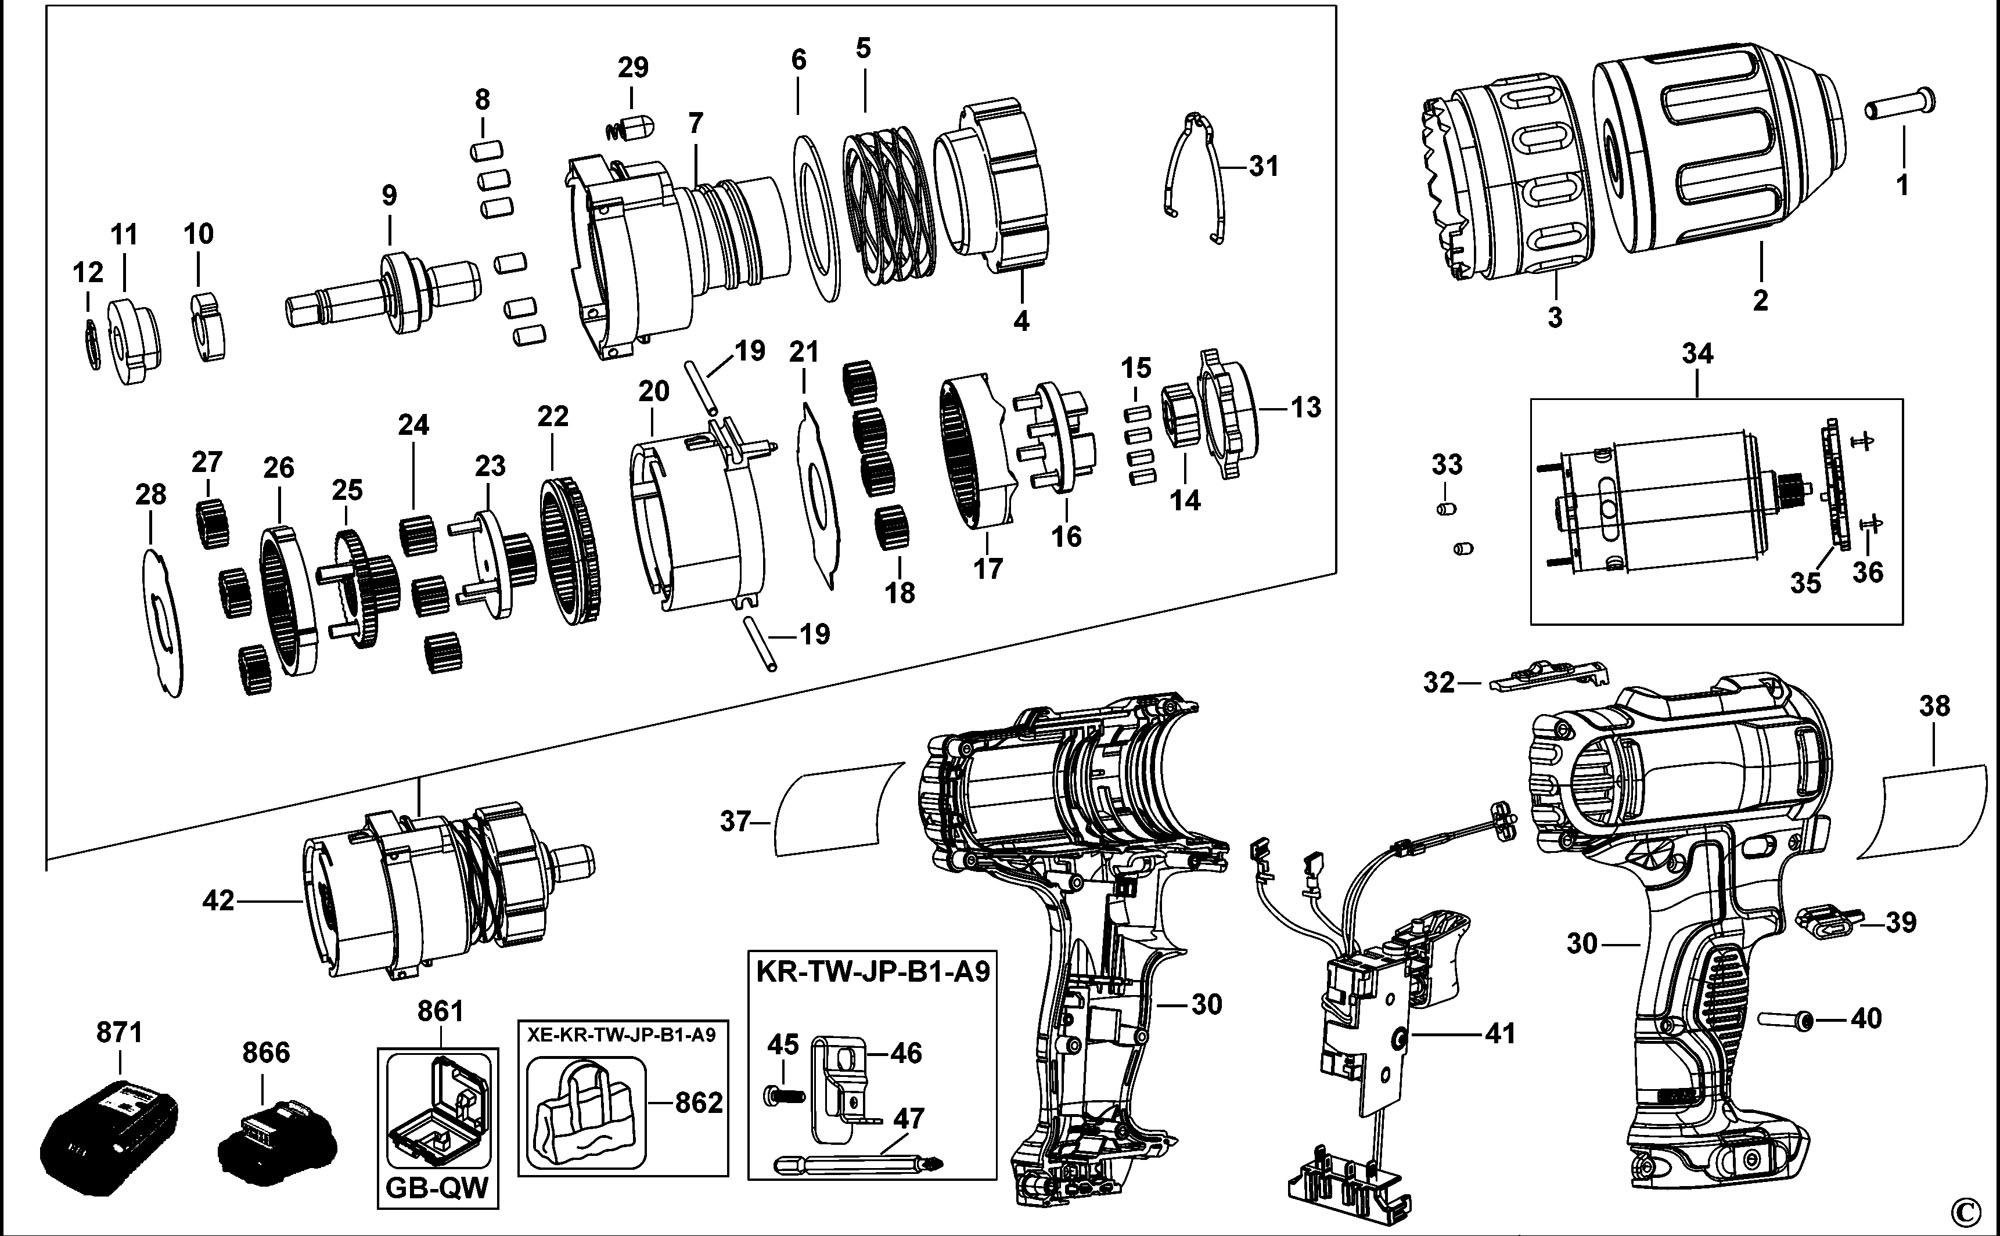 Learn To Draw People likewise American Standard Toilets Dimensions in addition 3y83a Wiring Diagram Craftsman Riding Lawn Mower Need One moreover SPARE G2800IS additionally 3. on diagram pro smart